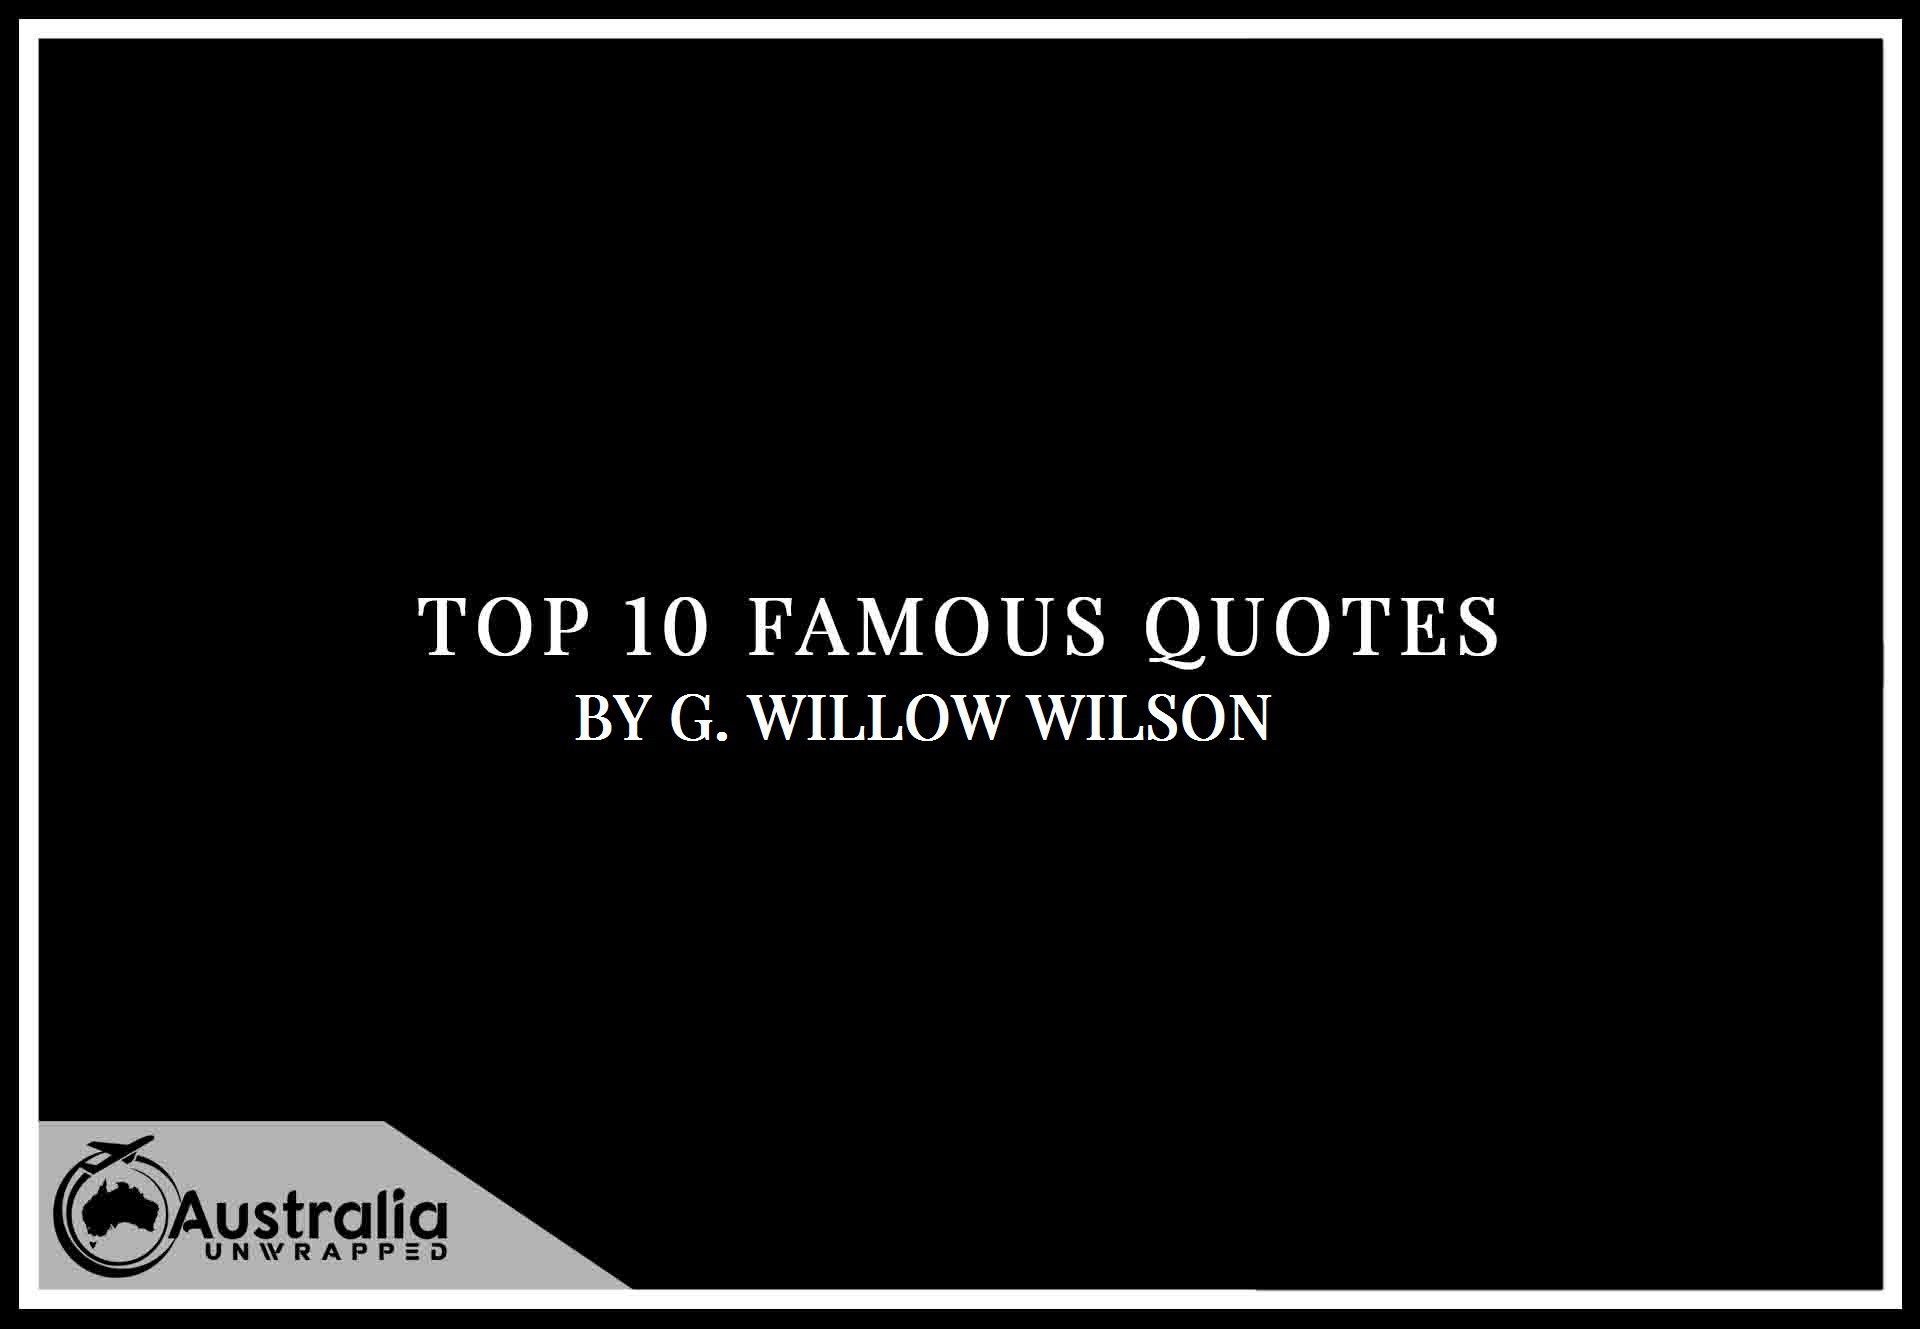 G. Willow Wilson's Top 10 Popular and Famous Quotes